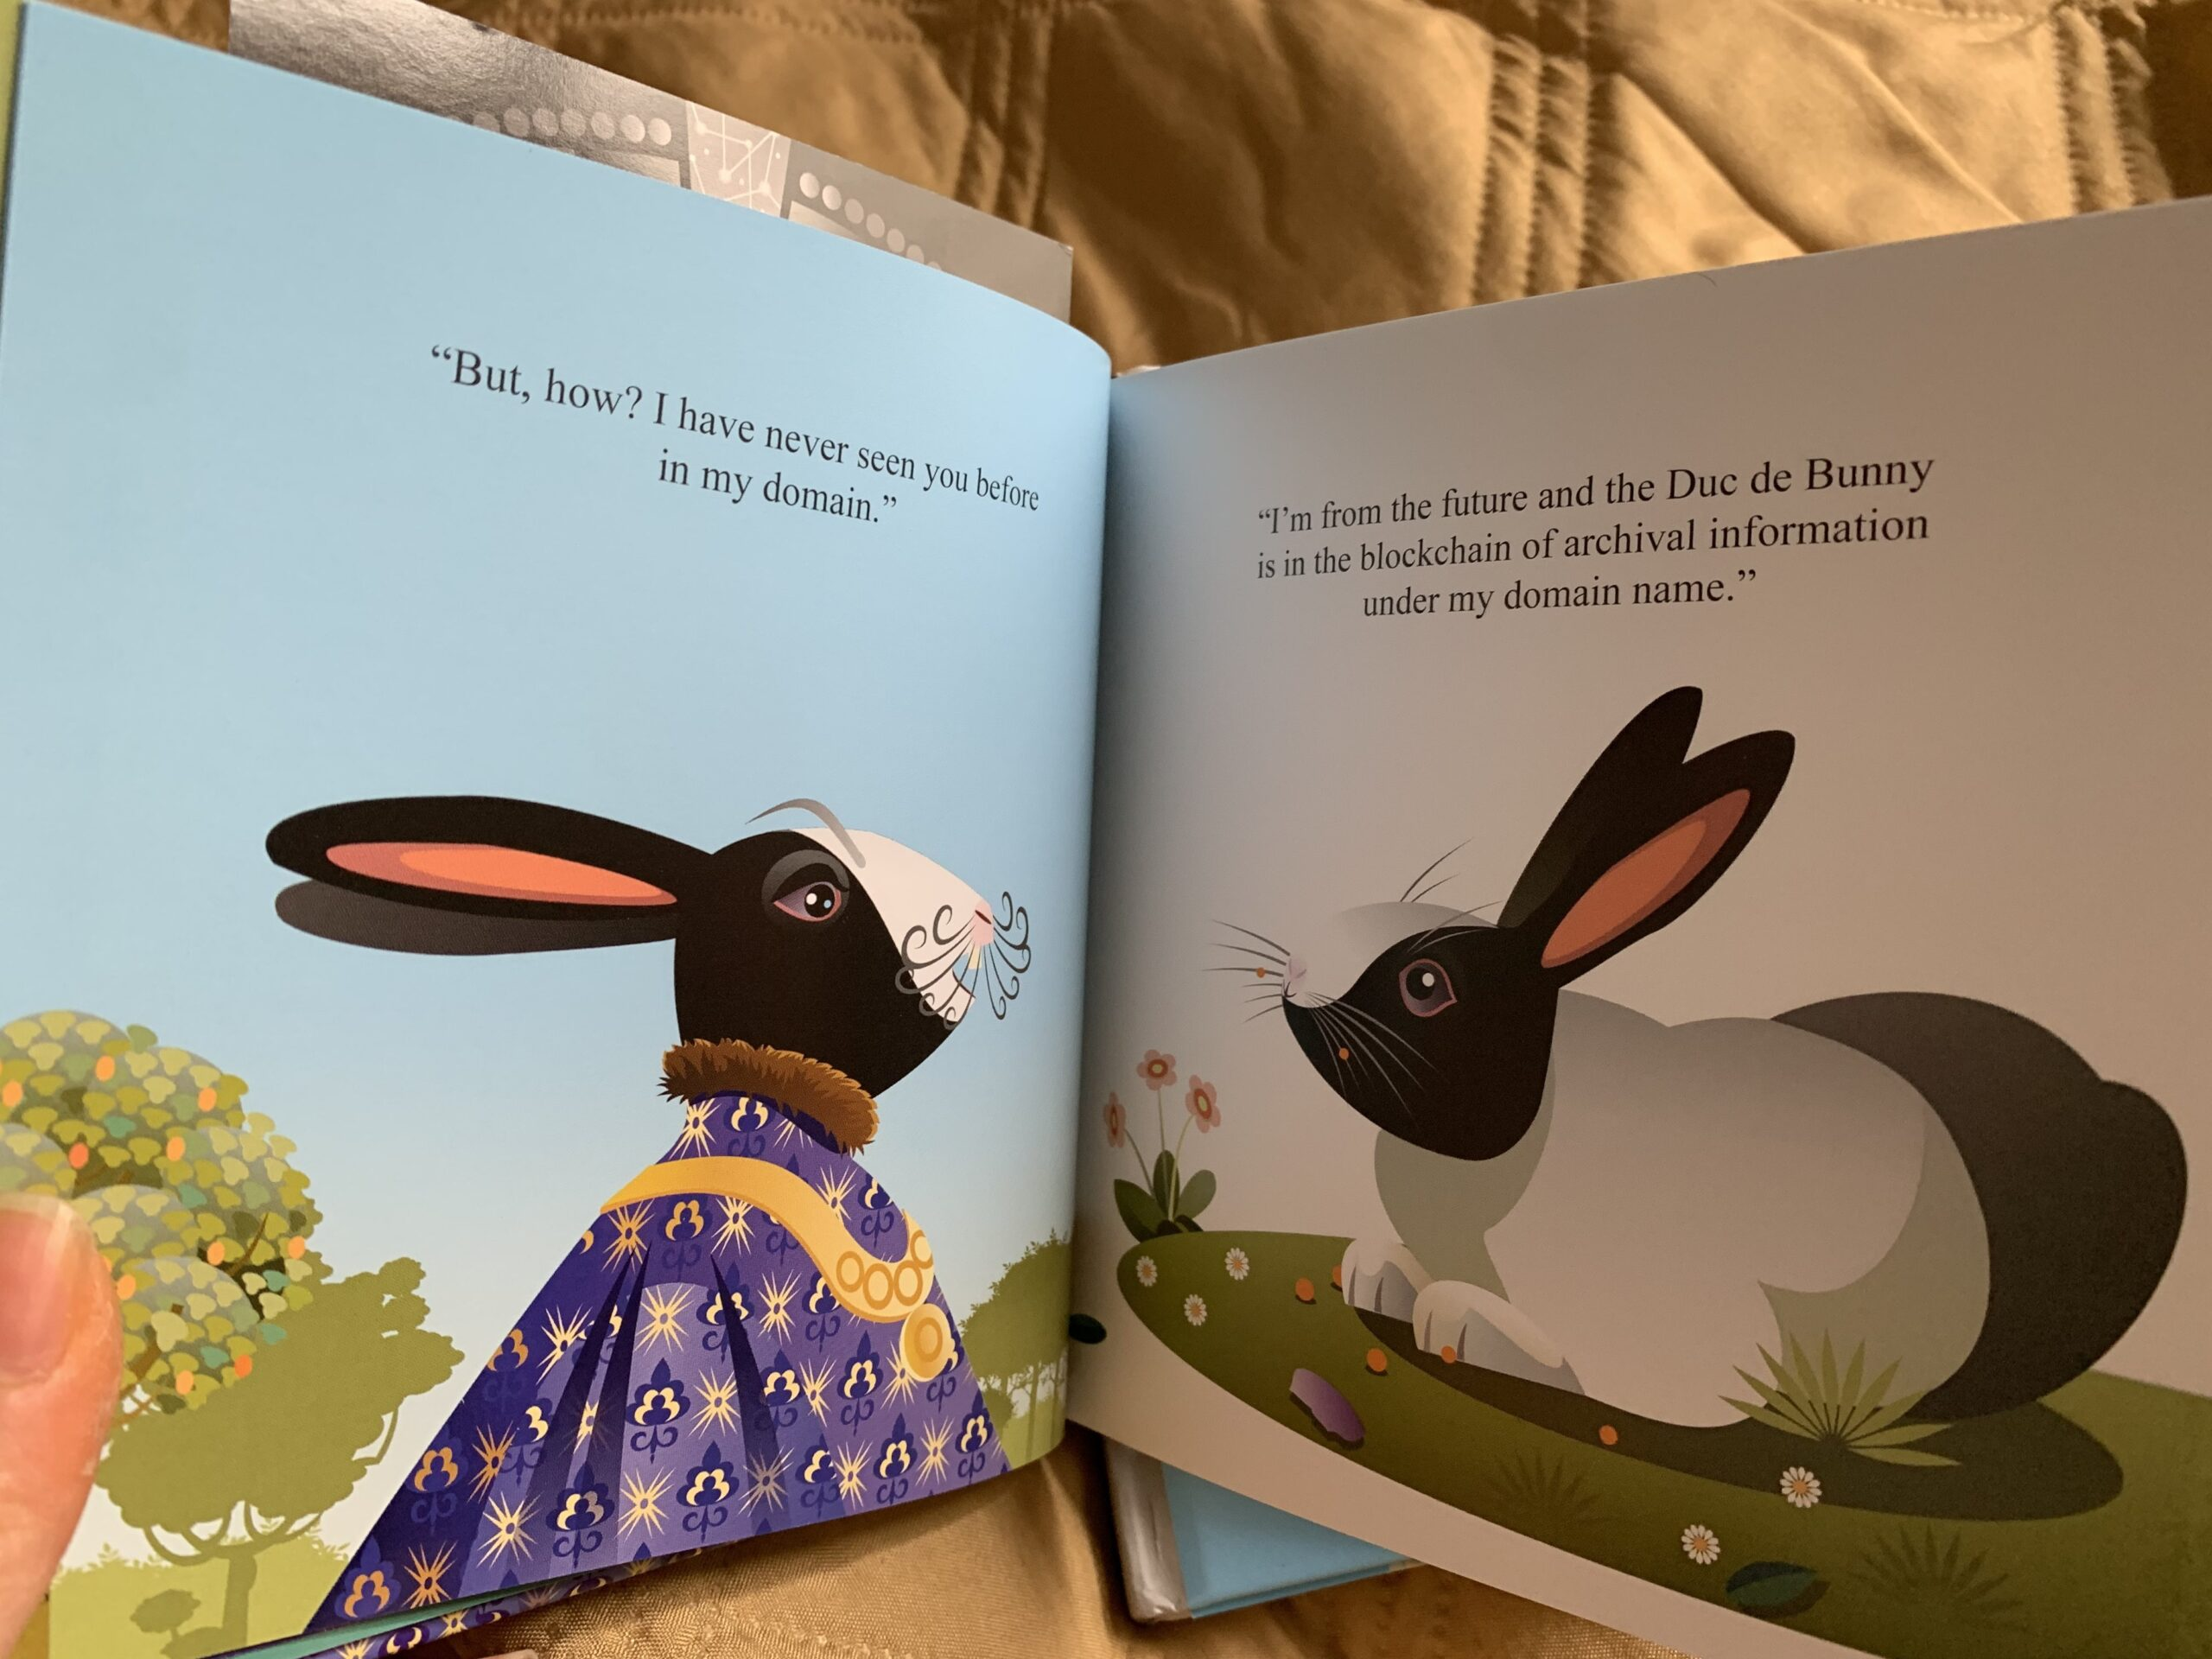 Check out this weird kid's book about a time traveling rabbit who invents the blockchain